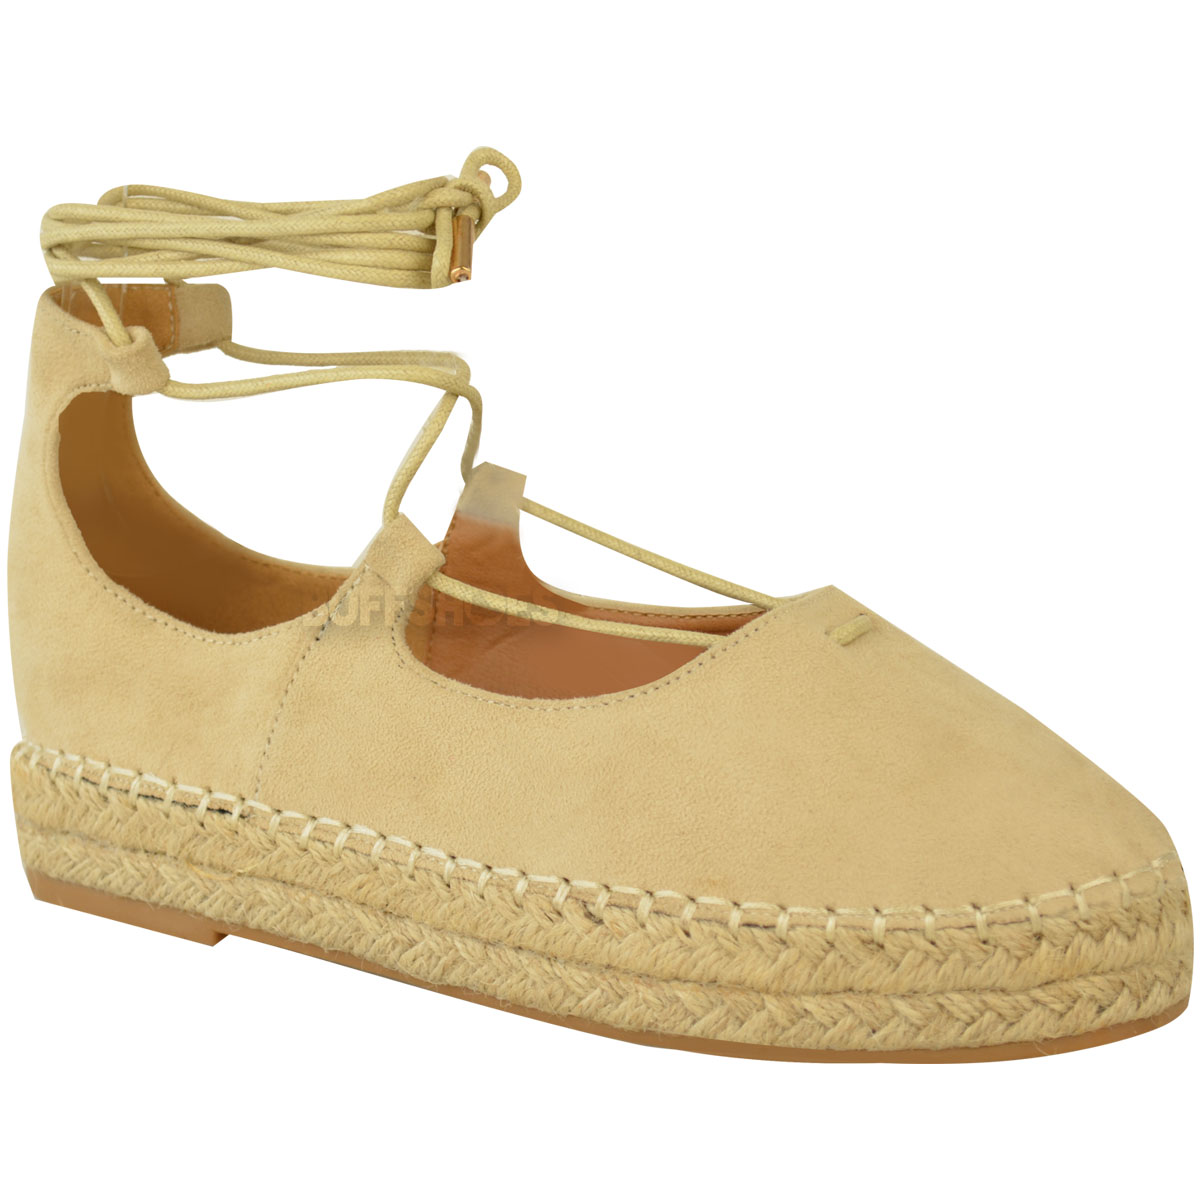 New Womens Ladies Lace Up Strappy Low Flat Canvas Wedge Espadrilles Sandals Size